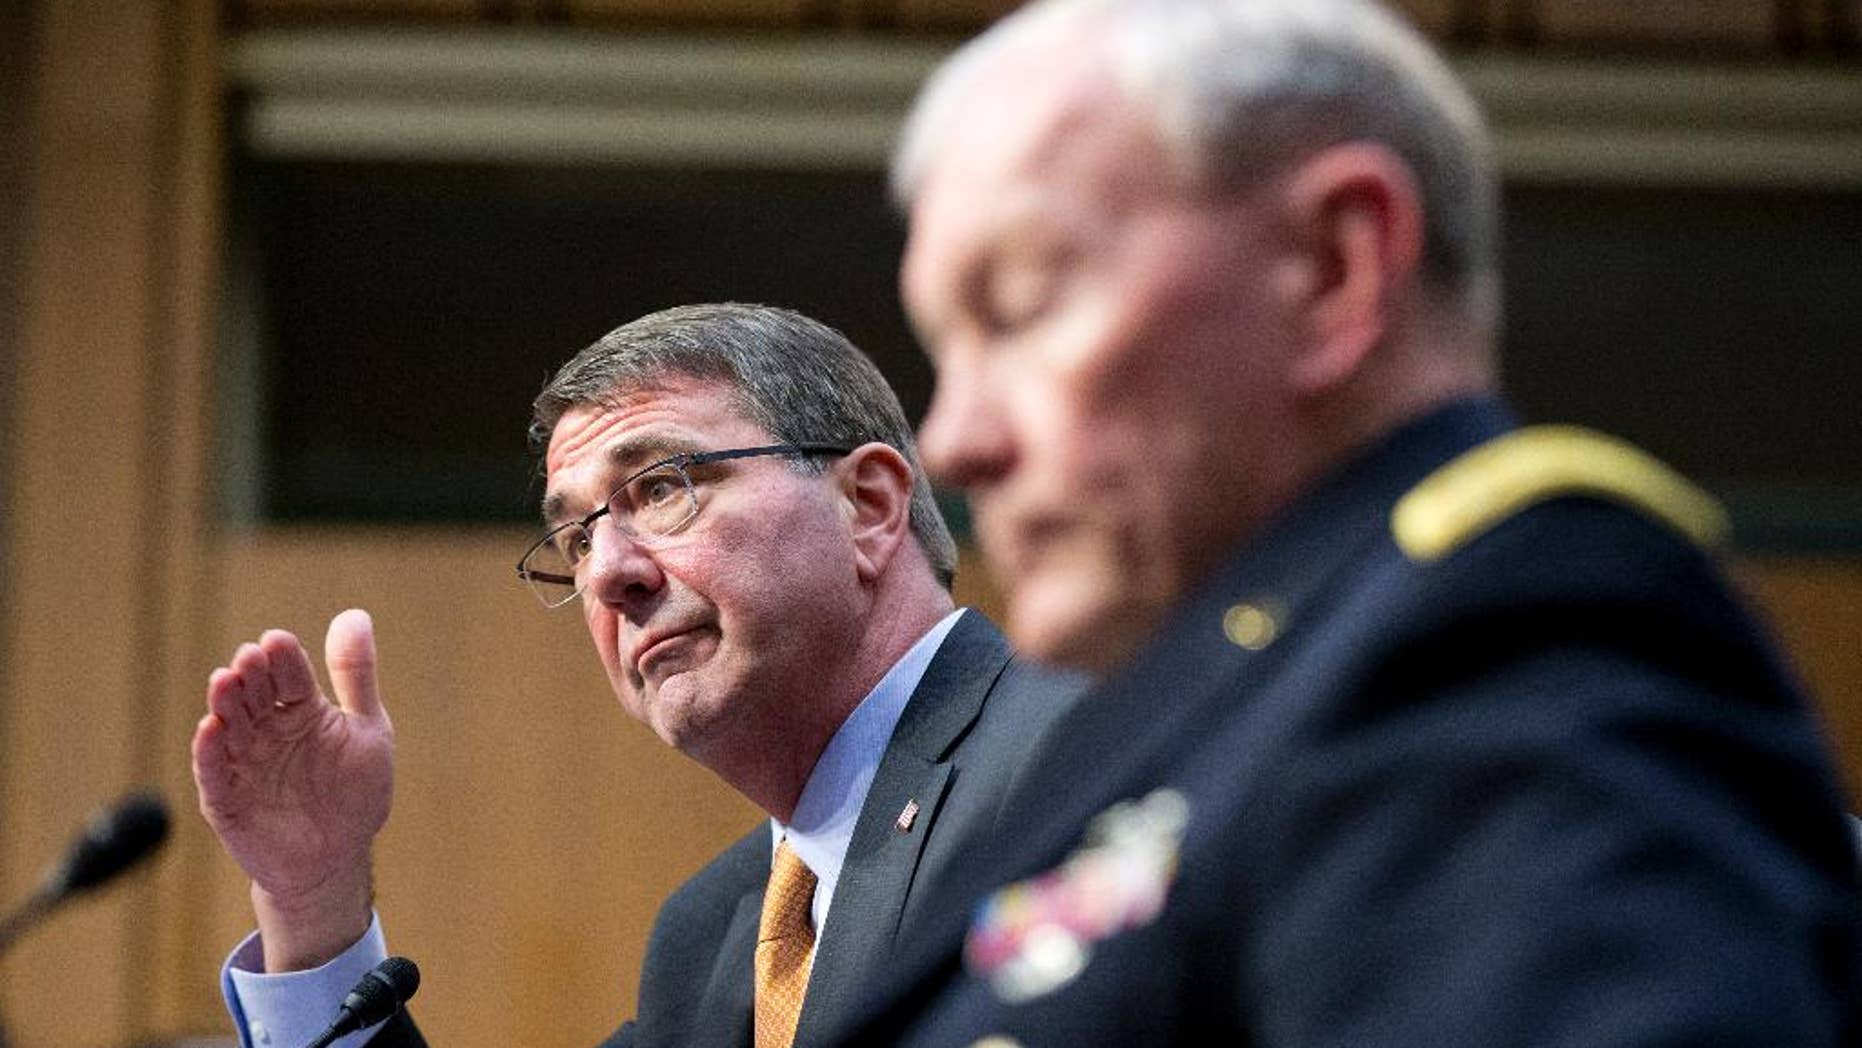 "FILE - In this March 3, 2015 file photo, Defense Secretary Ash Carter, left, accompanied by Joint Chiefs Chairman Gen. Martin Dempsey, testifies on Capitol Hill in Washington before the Senate Armed Services Committee. Iran's growing influence in Iraq is setting off alarm bells, and nowhere is the problem starker than in the high-stakes battle for Tikrit. It marks a crucial fight in the bigger war to expel the Islamic State group from Iraq, and yet Iran and the Shiite militias it empowers _ not the U.S. _ are leading the charge. Carter, under questioning from Sen. John McCain this week, acknowledged his concern when McCain asked if it alarms him that Iran ""has basically taken over the fight."" (AP Photo/Manuel Balce Ceneta, File)"